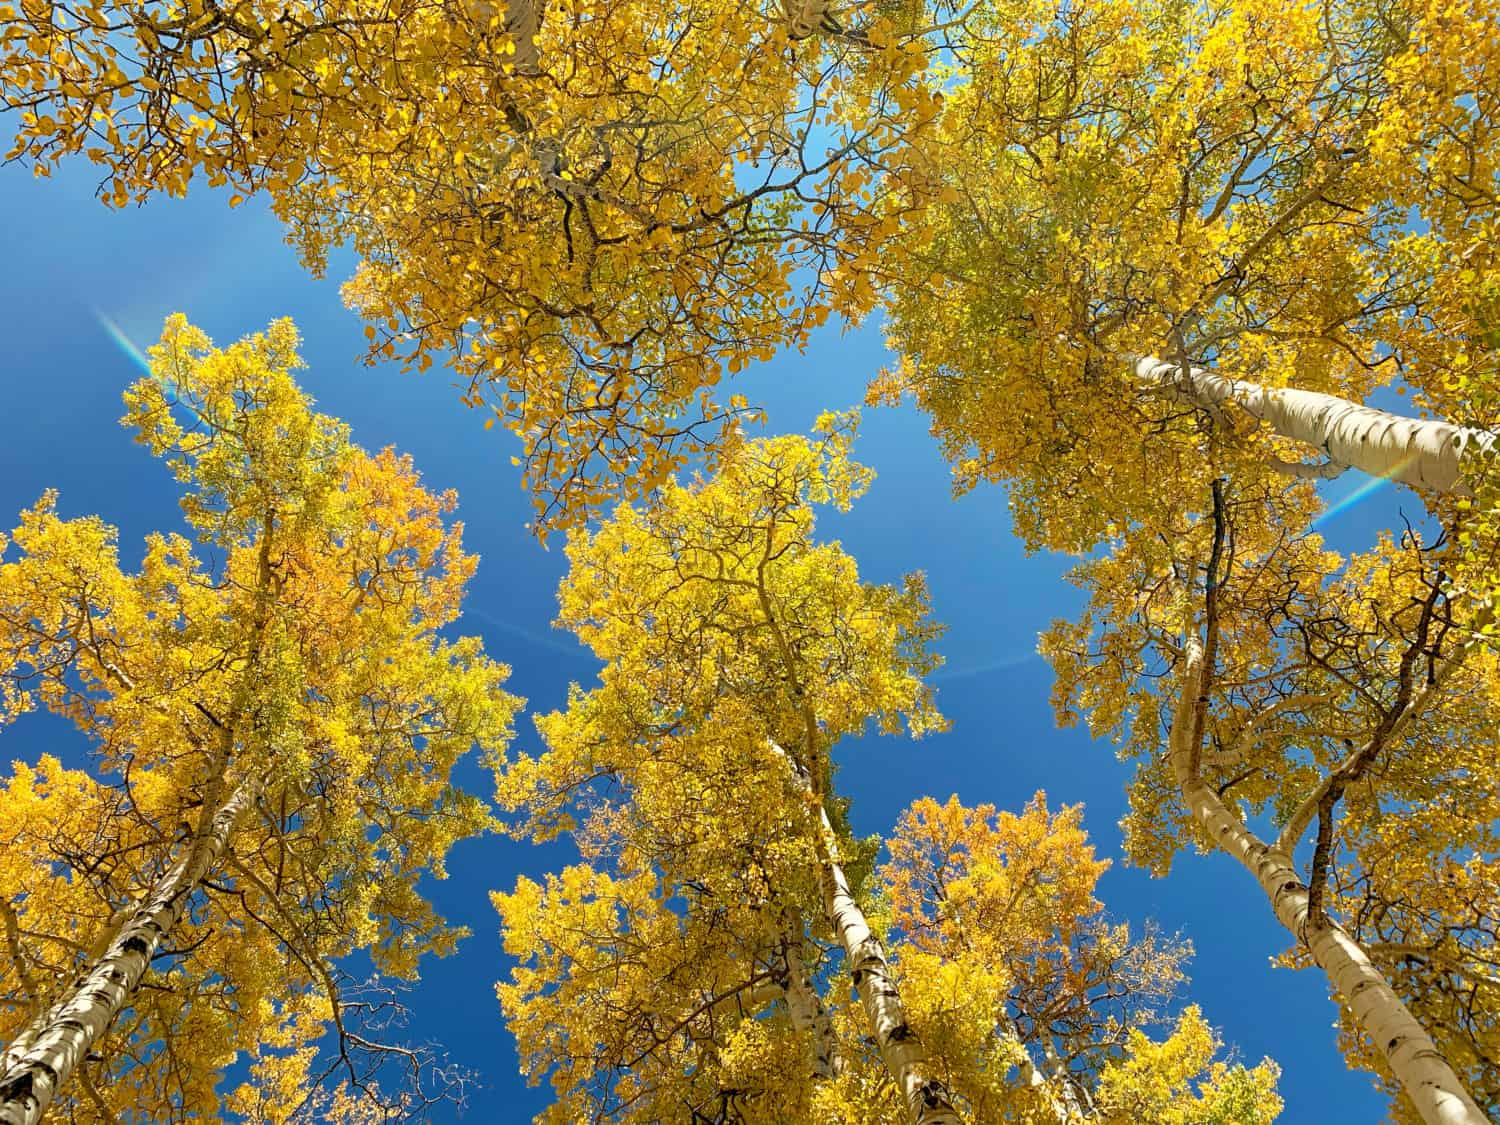 Golden aspen leaves from below with a blue sky in the background